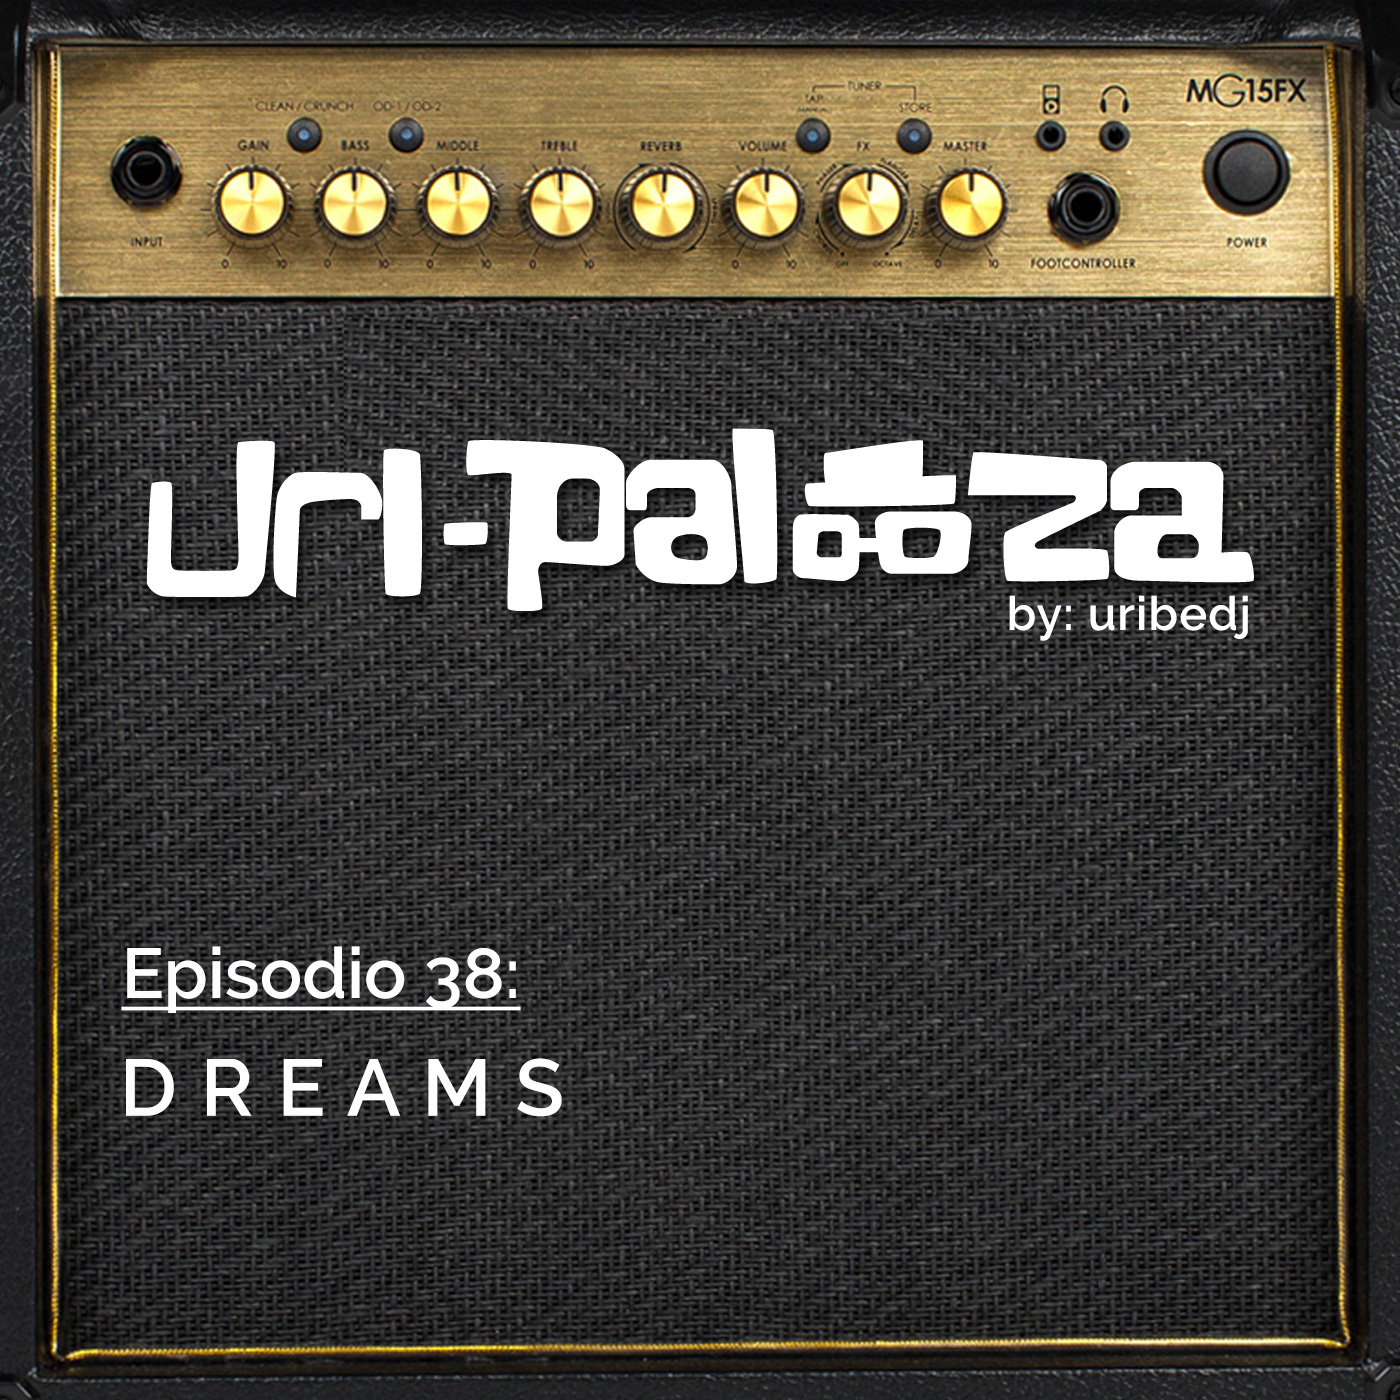 ícono podcast uripalooza Delorean Dreams